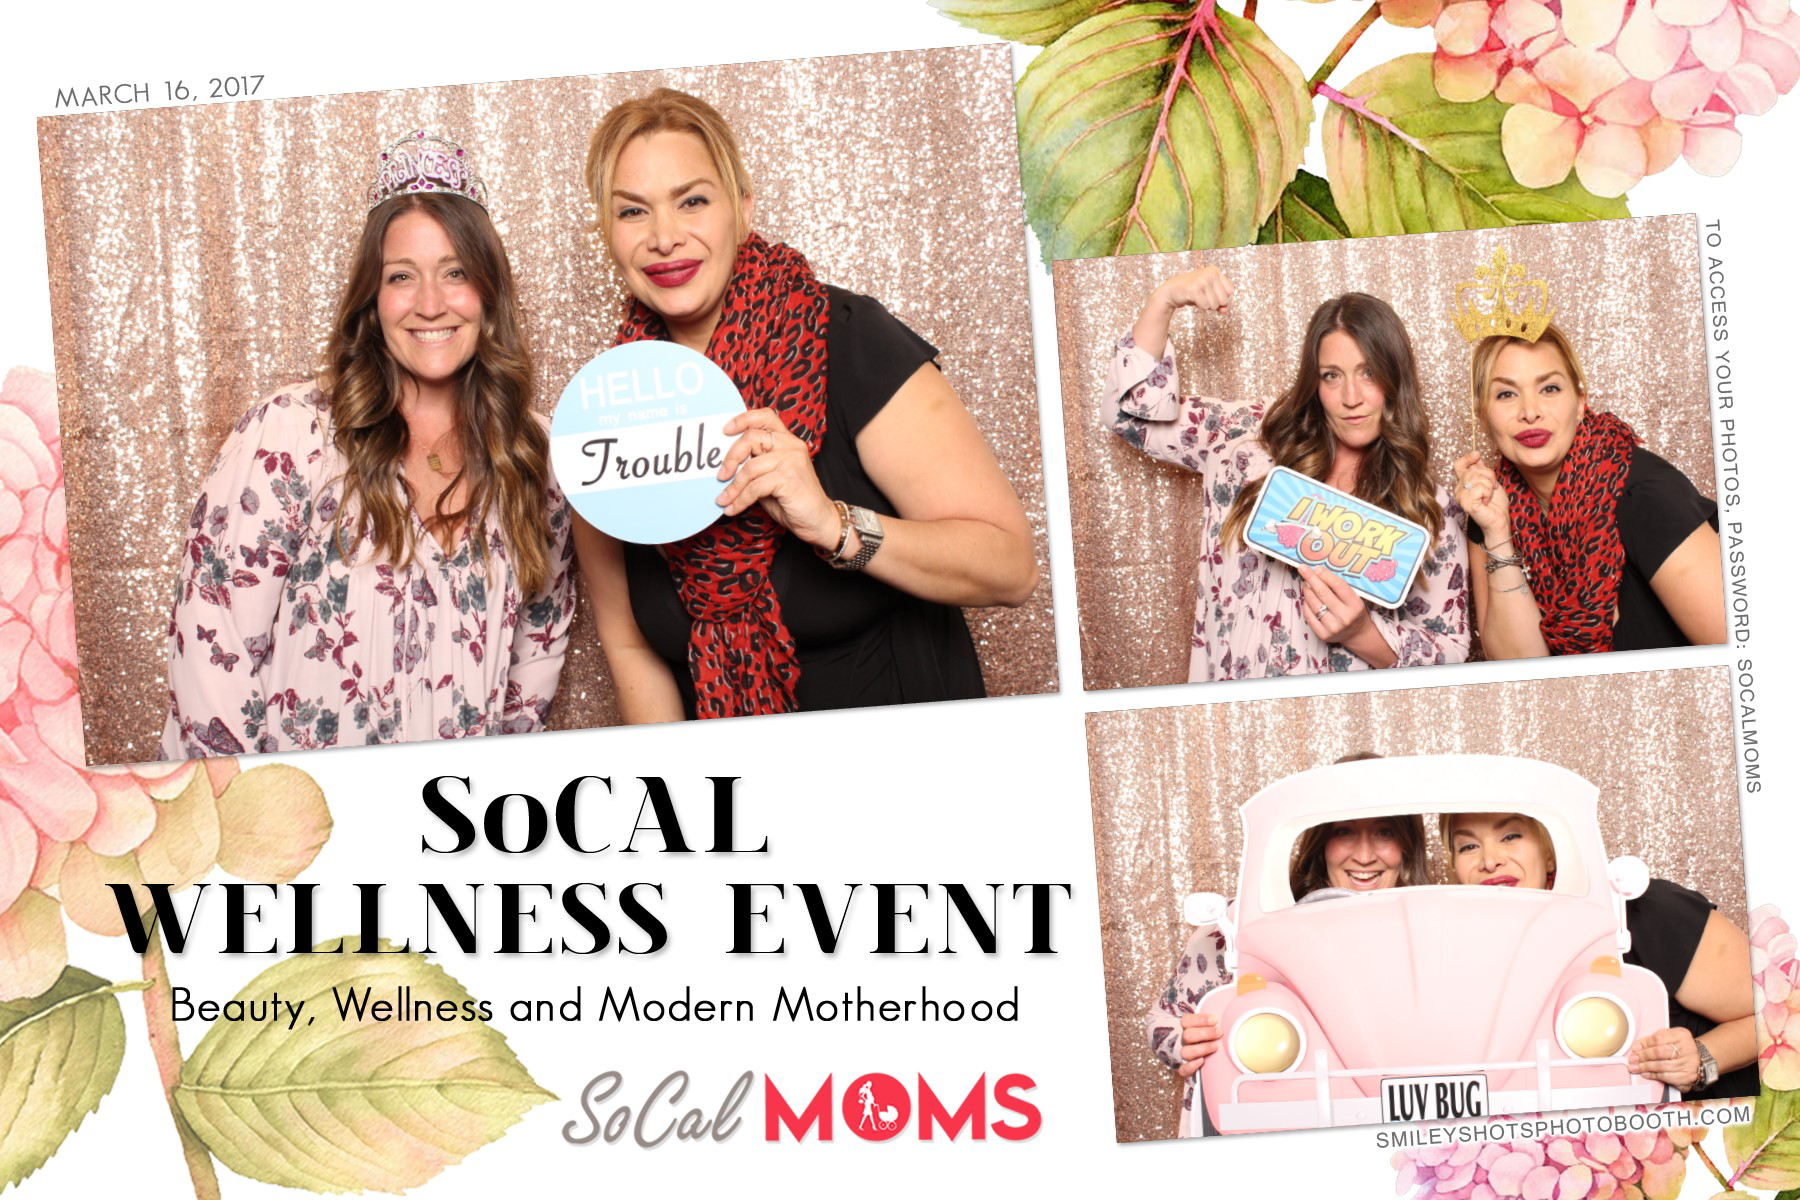 Socal Wellness Event Socal Moms Smiley Shots Photo Booth Photobooth (18).png